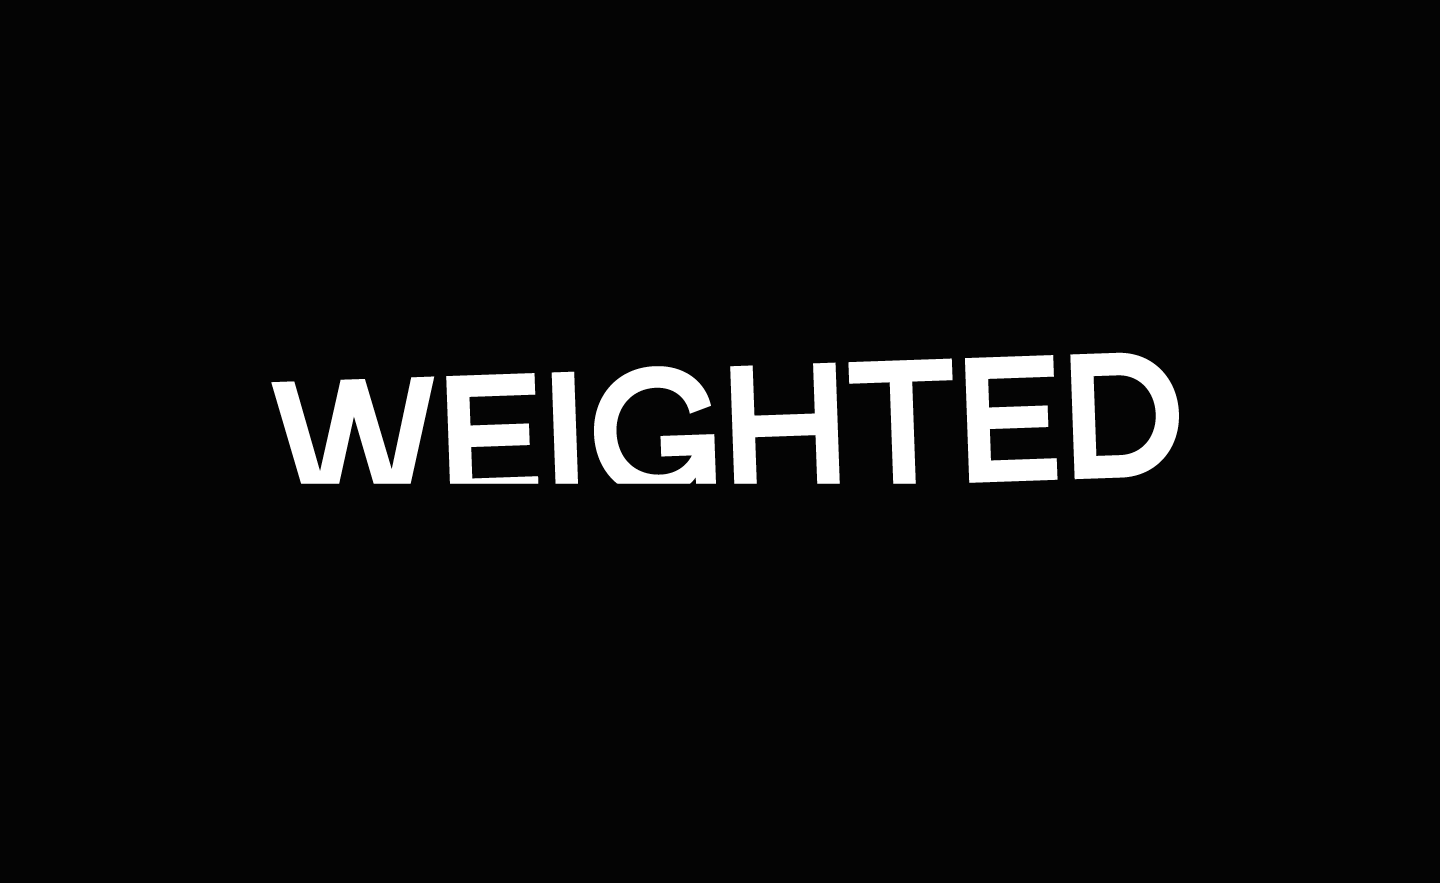 🗞️The Wrap: Weighted